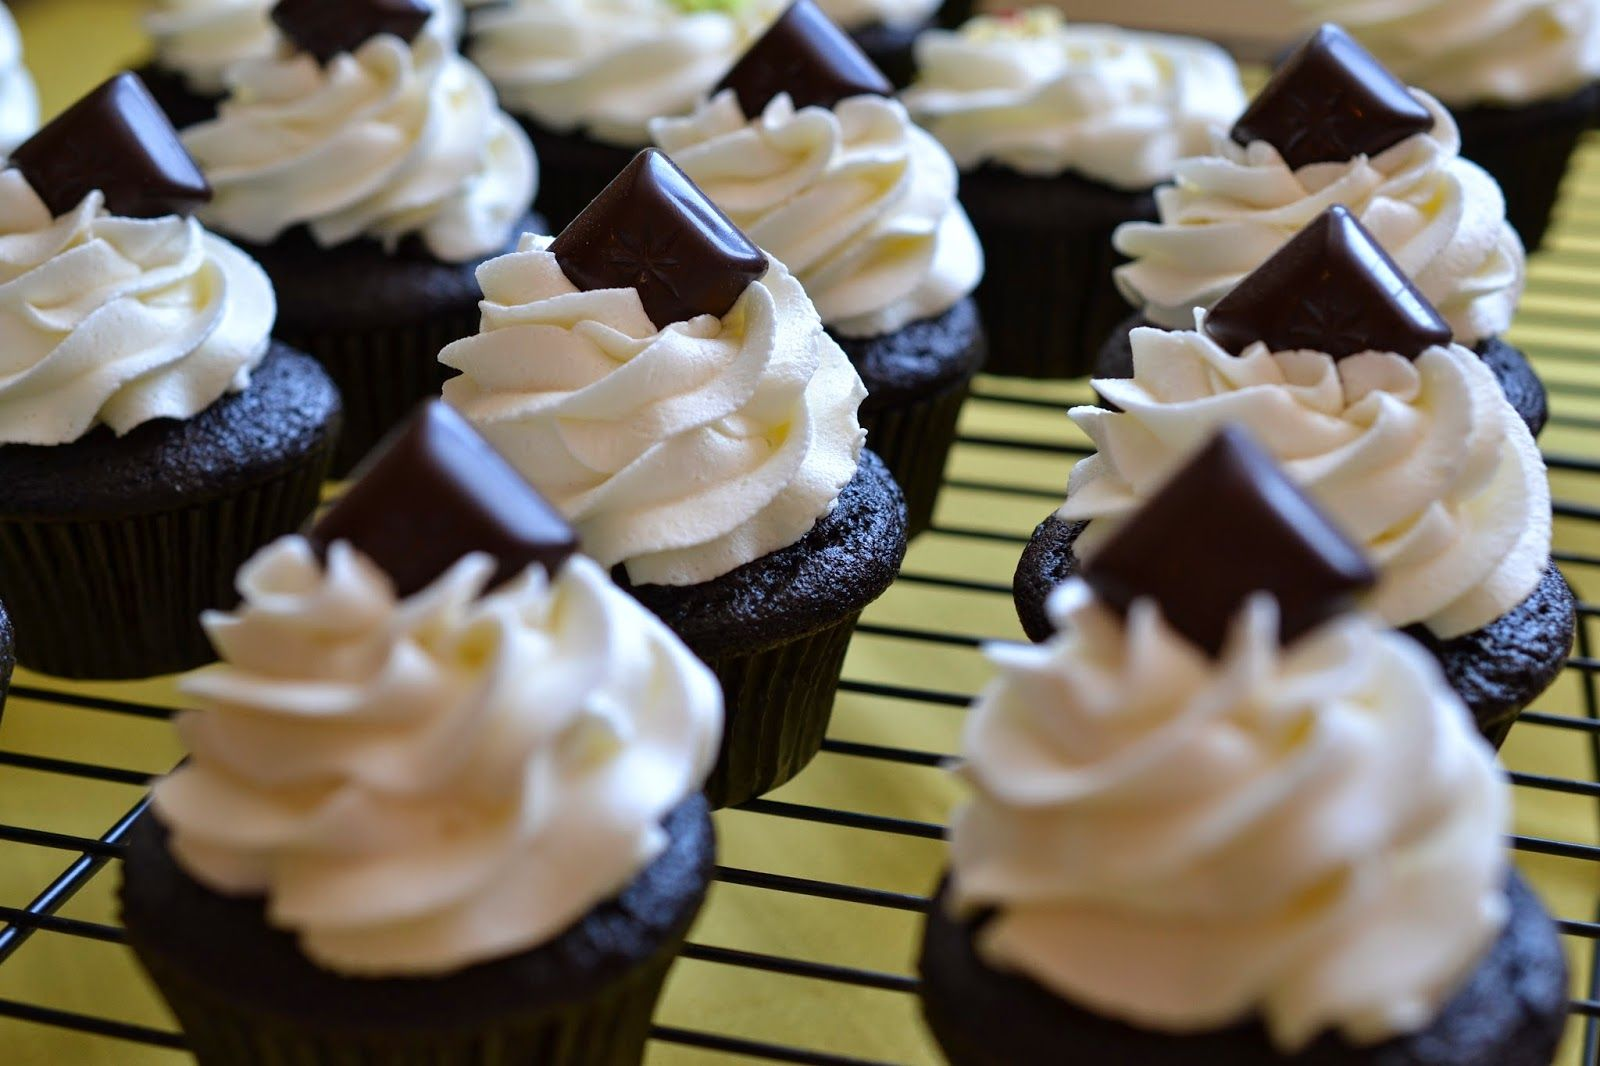 The Sugary Shrink: Filled cupcakes